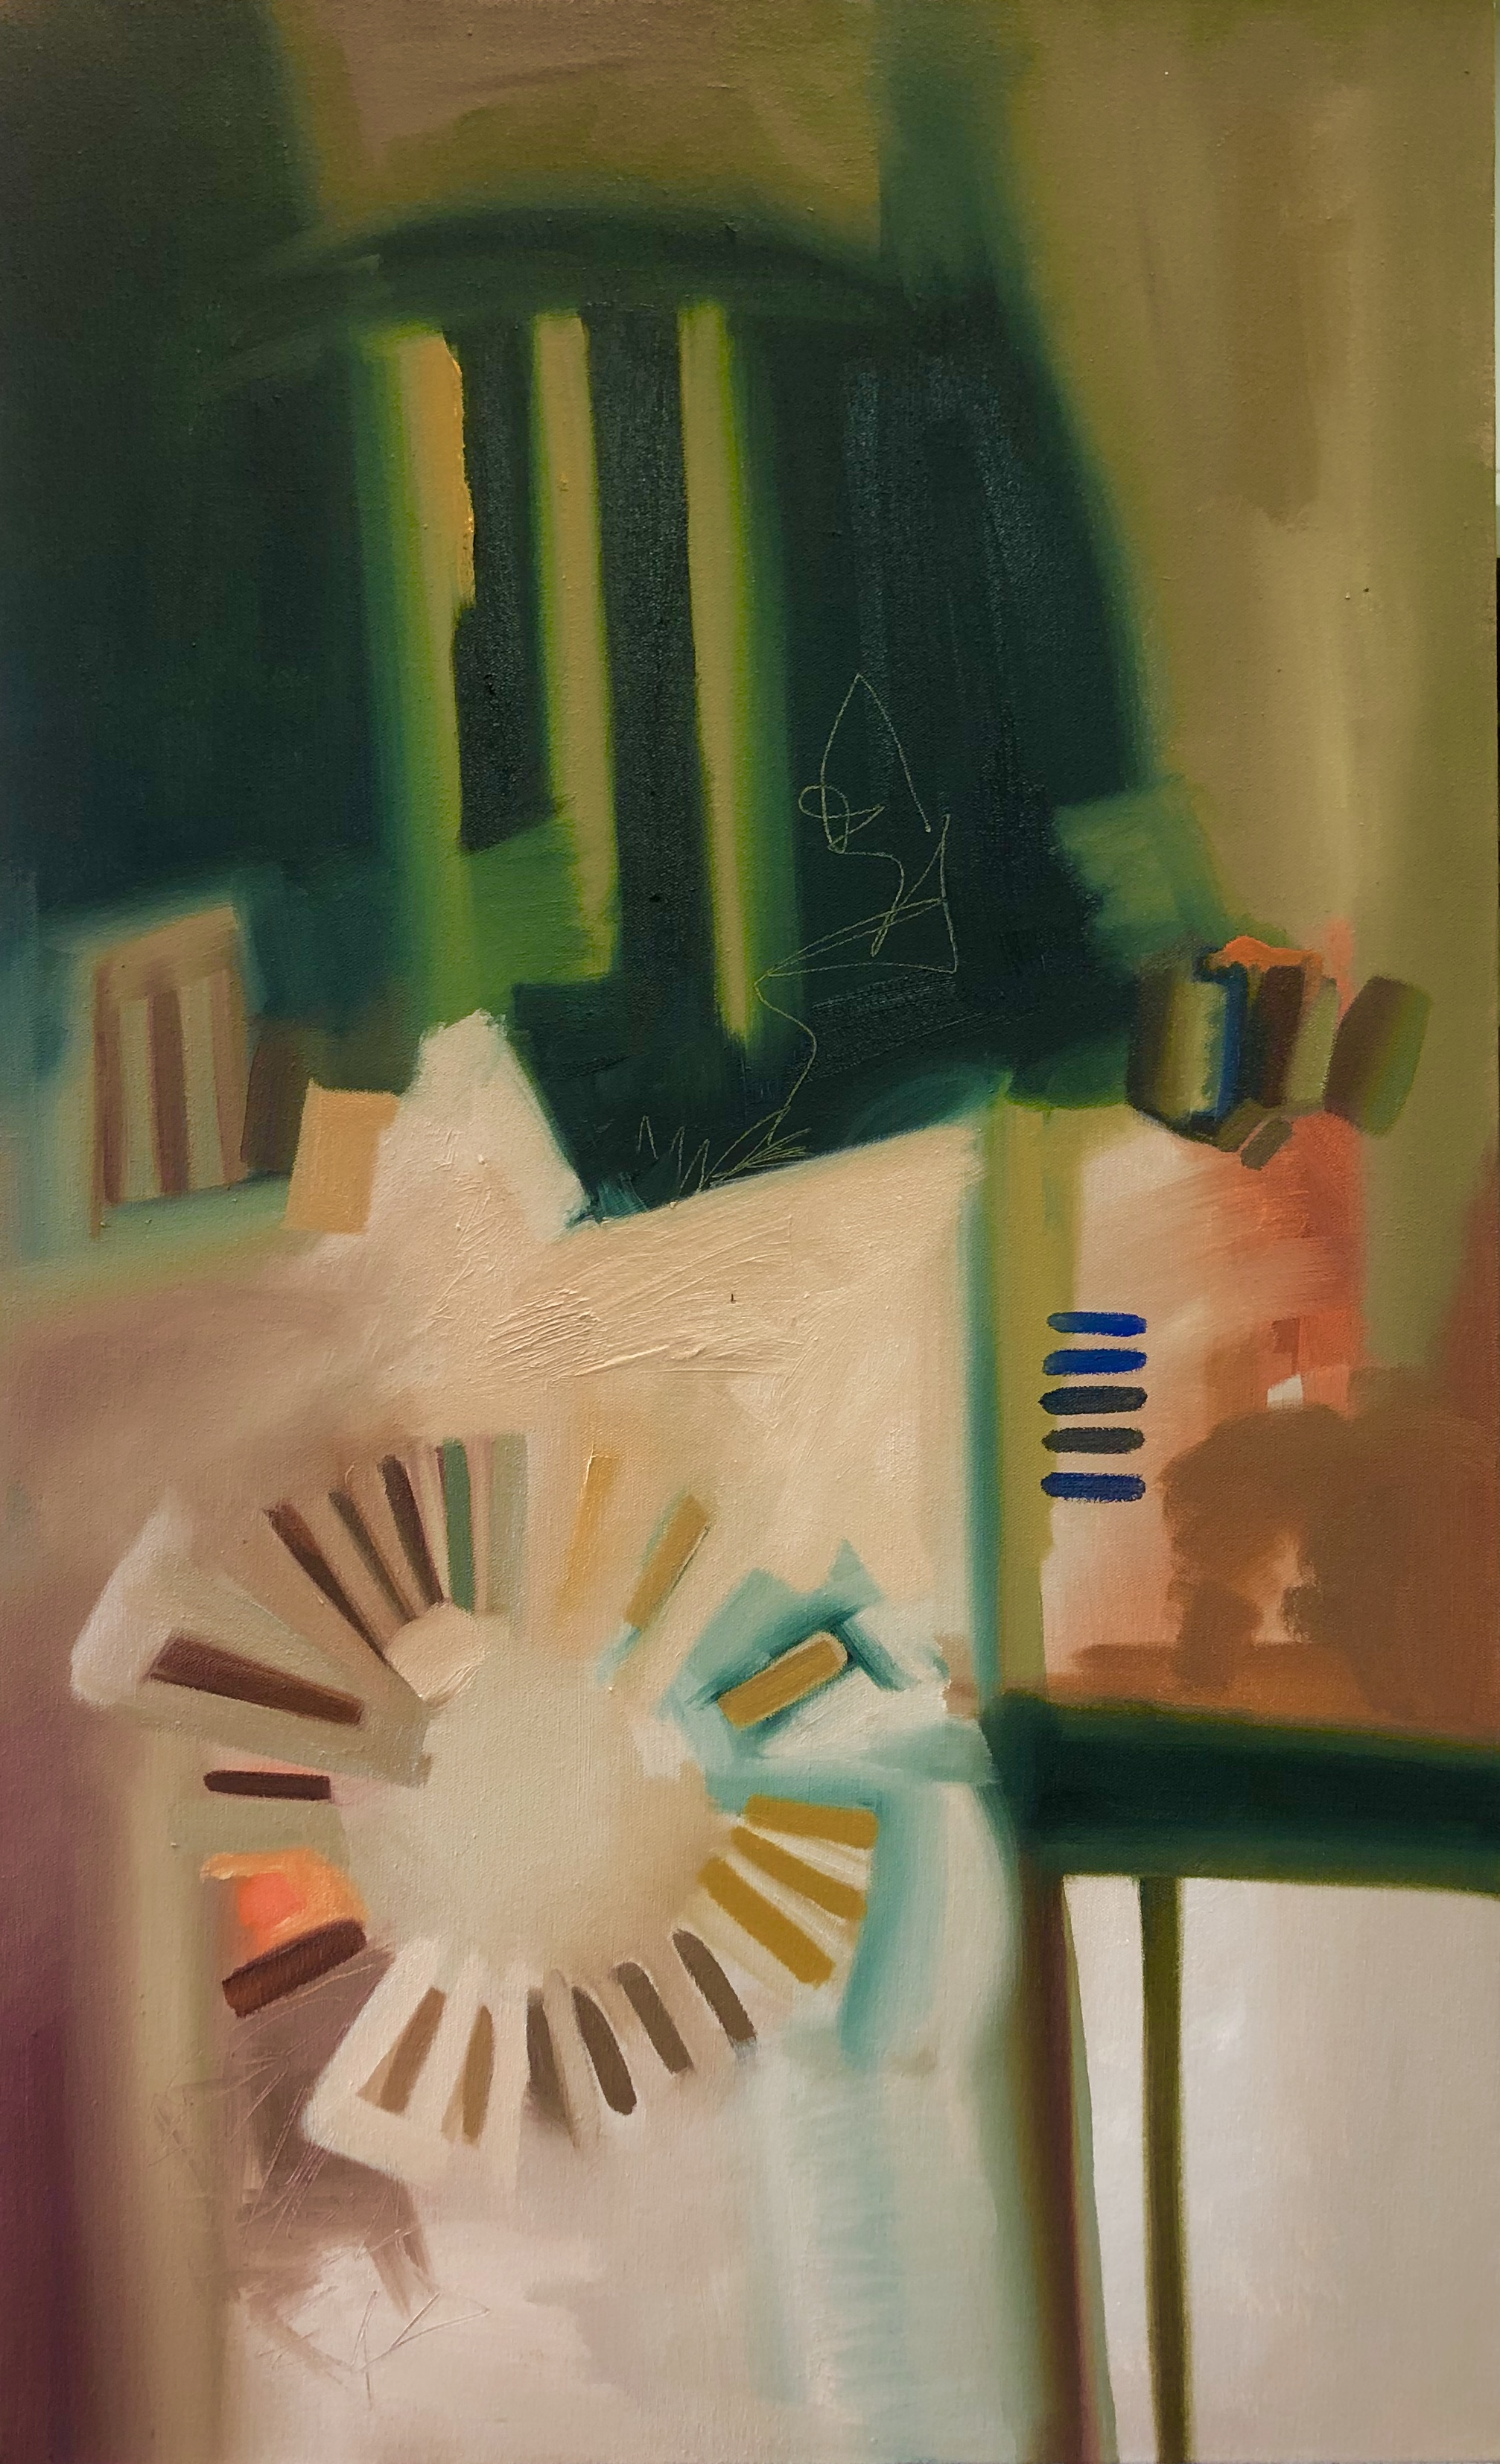 Luminescent,  2019. Oil on Canvas. 30 x 20 in. $750